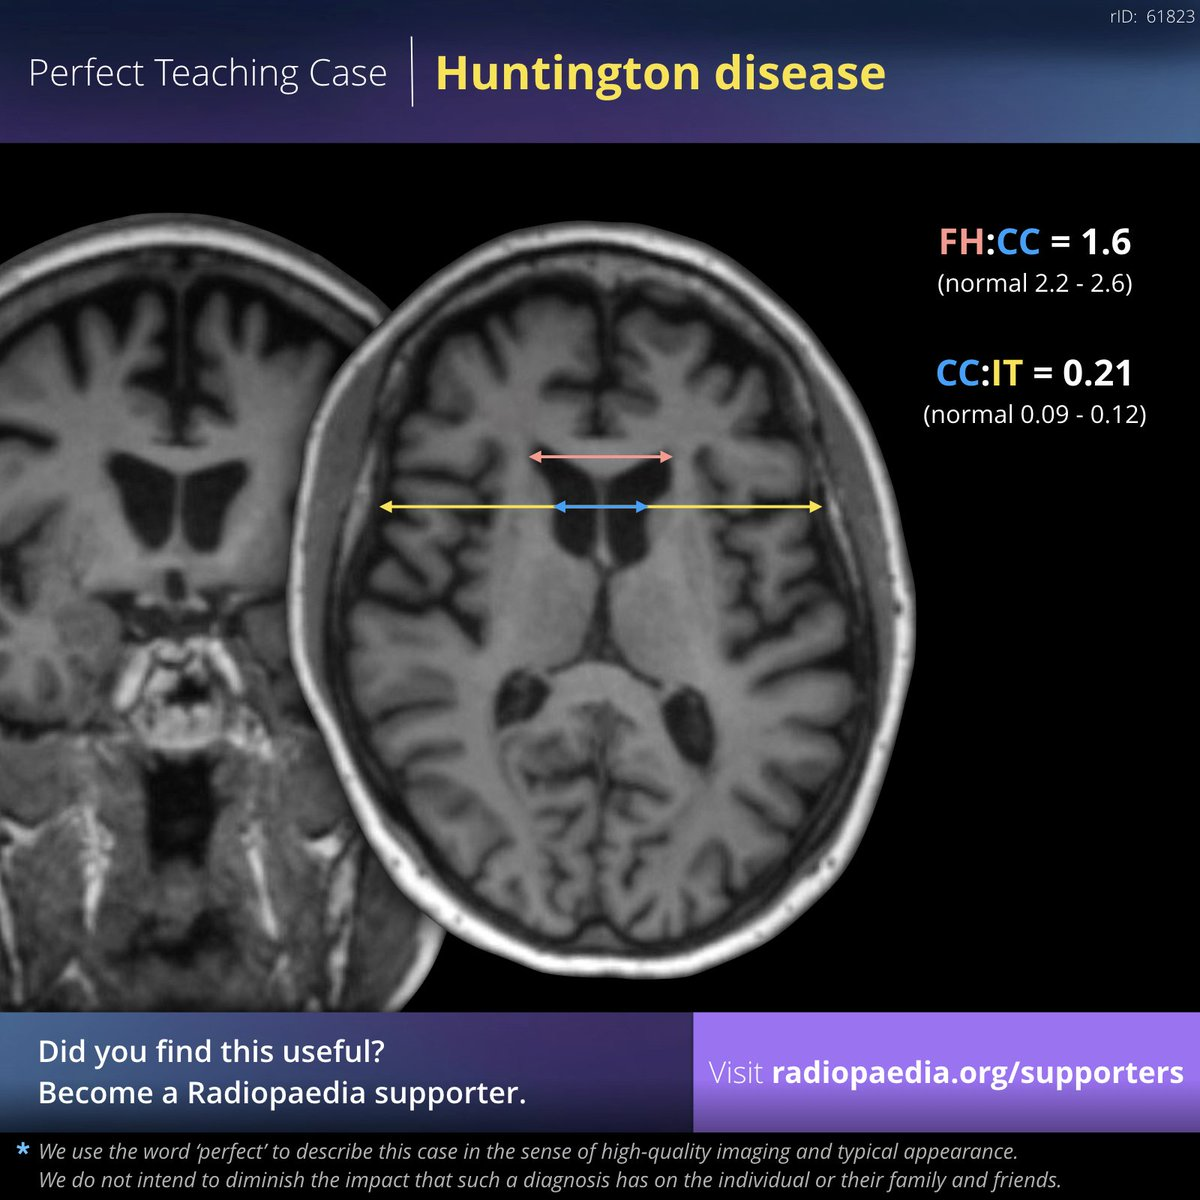 Frank Gaillard On Twitter Perfect Teaching Case Huntington Disease Mri View Case Https T Co Vibocxmos4 Become A Radiopaedia Supporter Https T Co Uoz1752oxy Supportradiopaedia Radiology Foamed Foamrad Neurorad Brain Neuropsychiatry